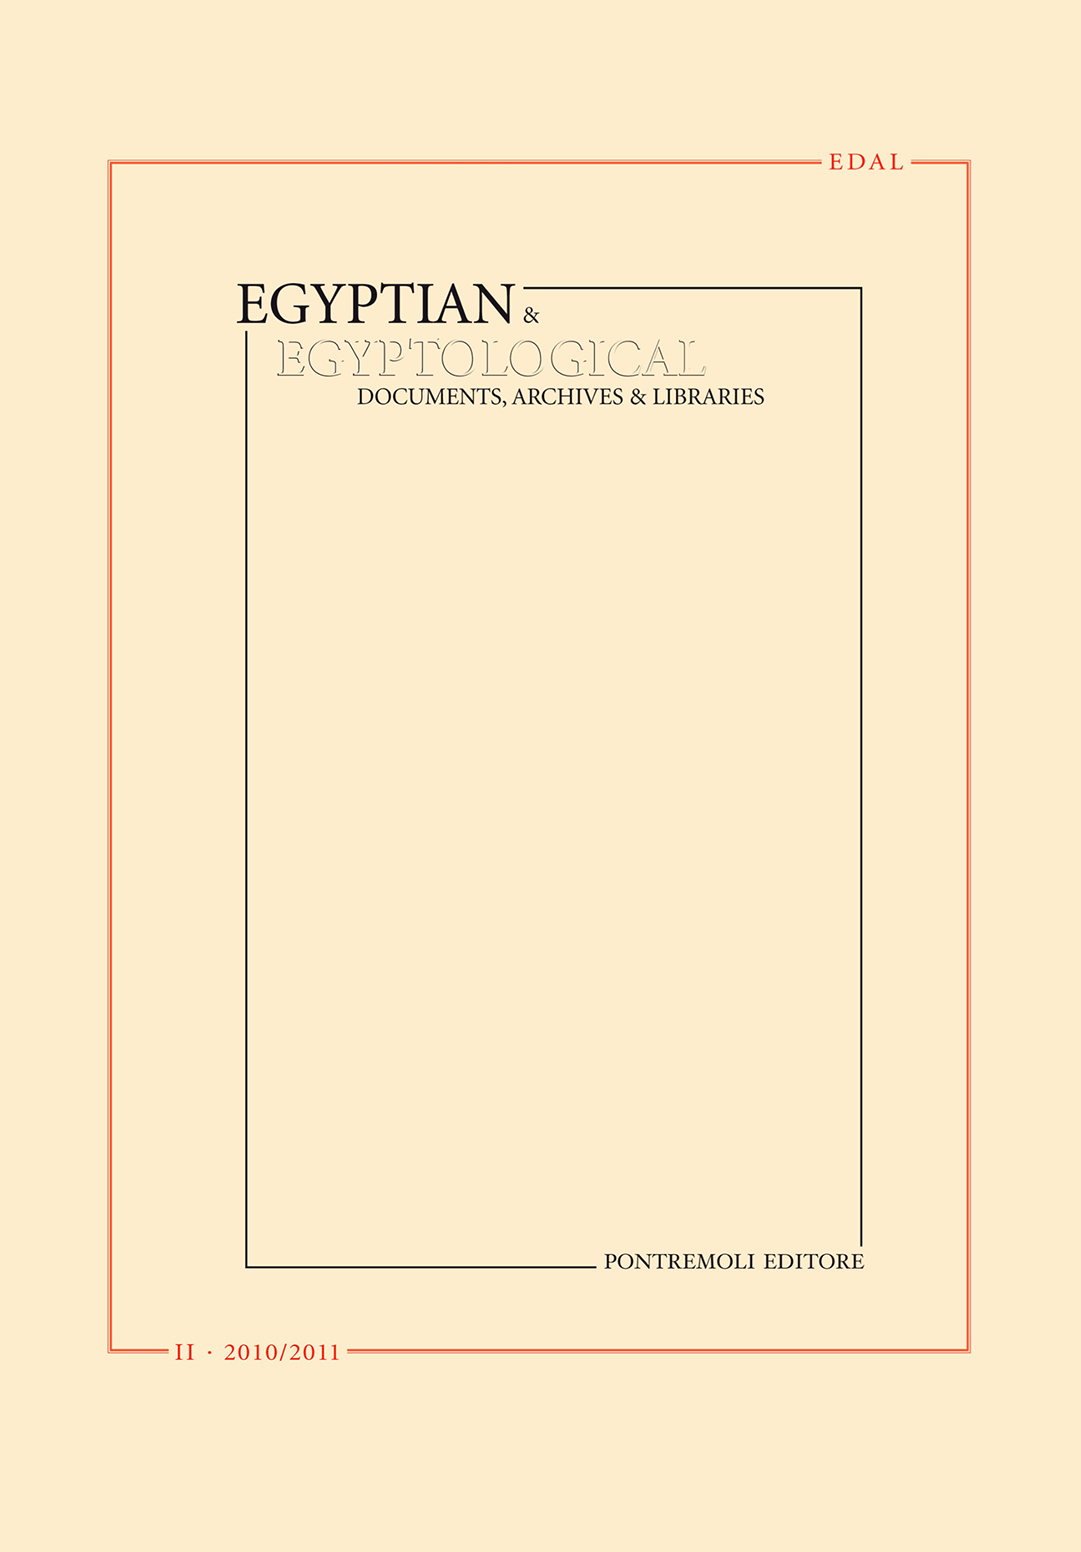 edal: egyptian & egyptological documents archives libraries - n. 2